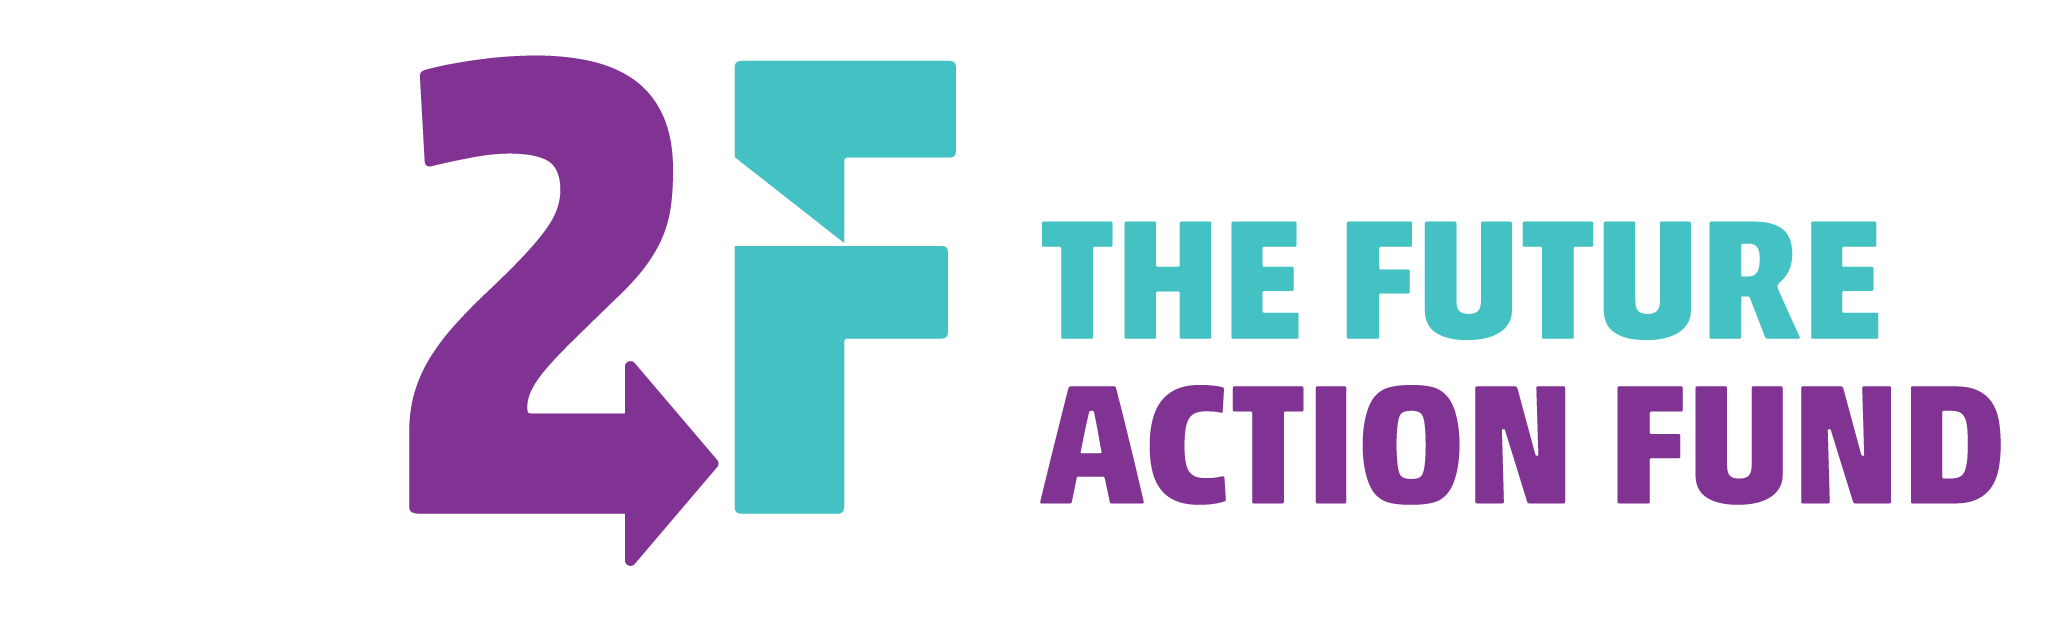 Black to the Future Action Fund